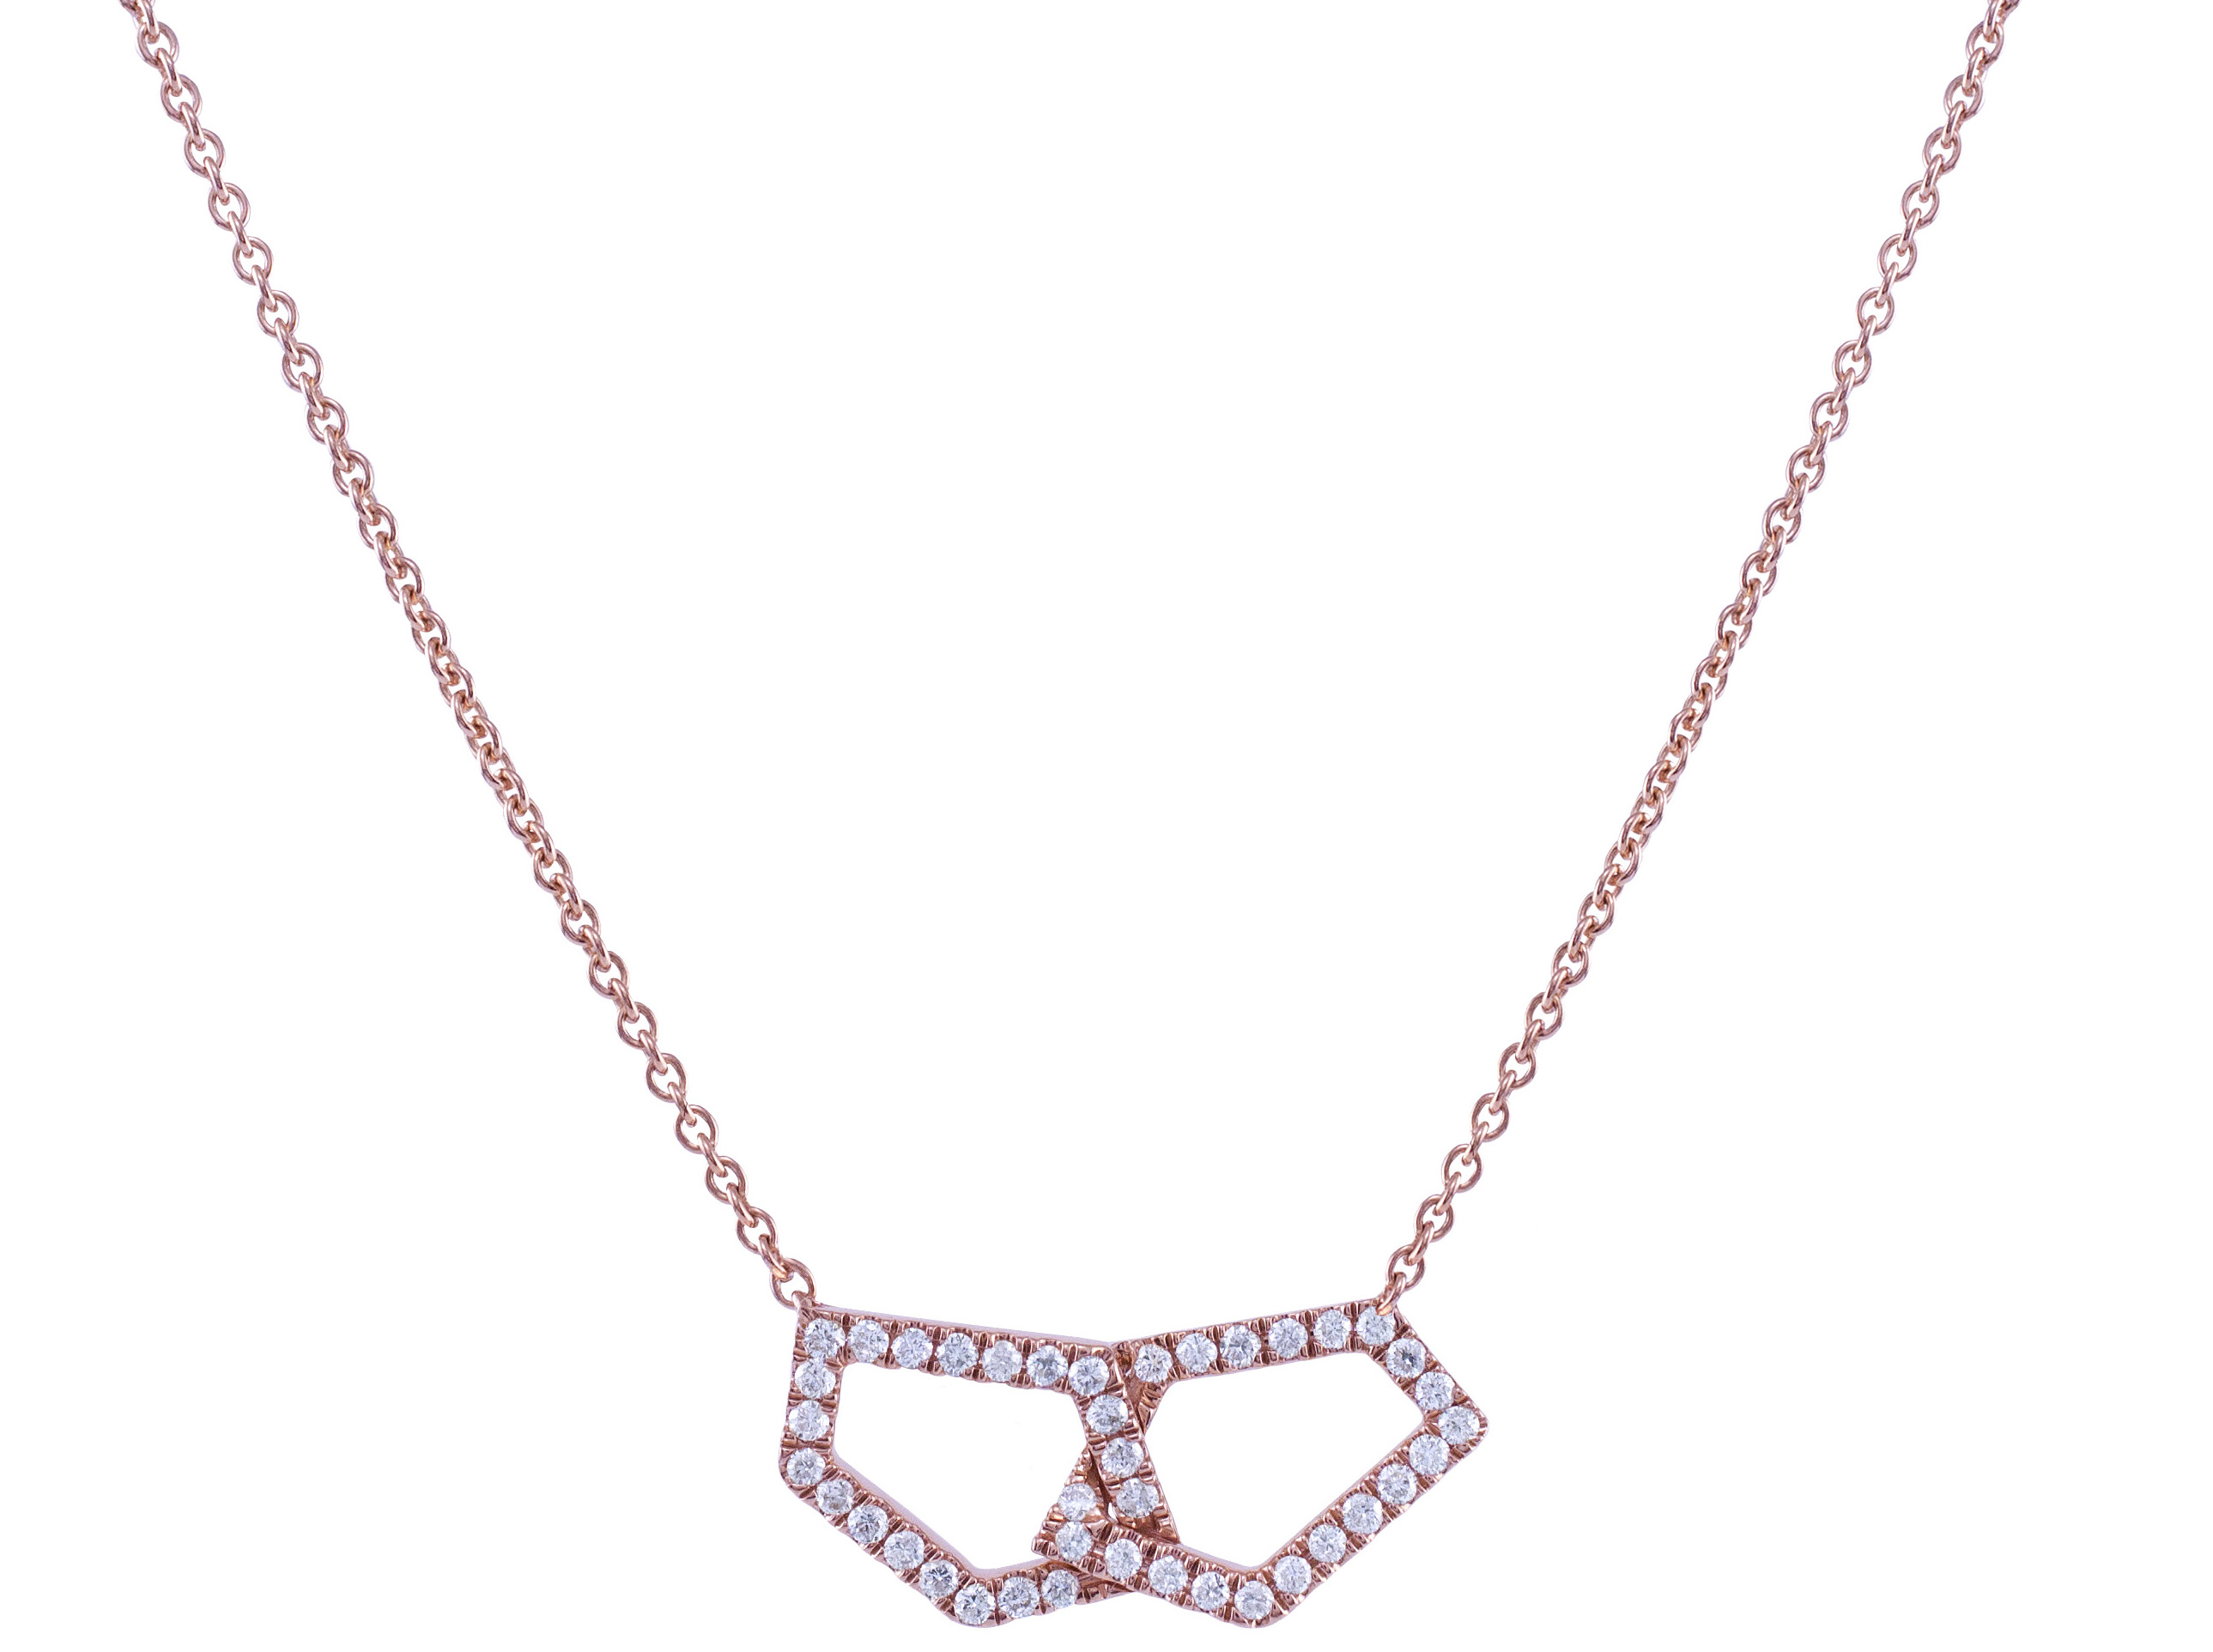 Andy Götz Double Euclid link necklace | JCK On Your Market